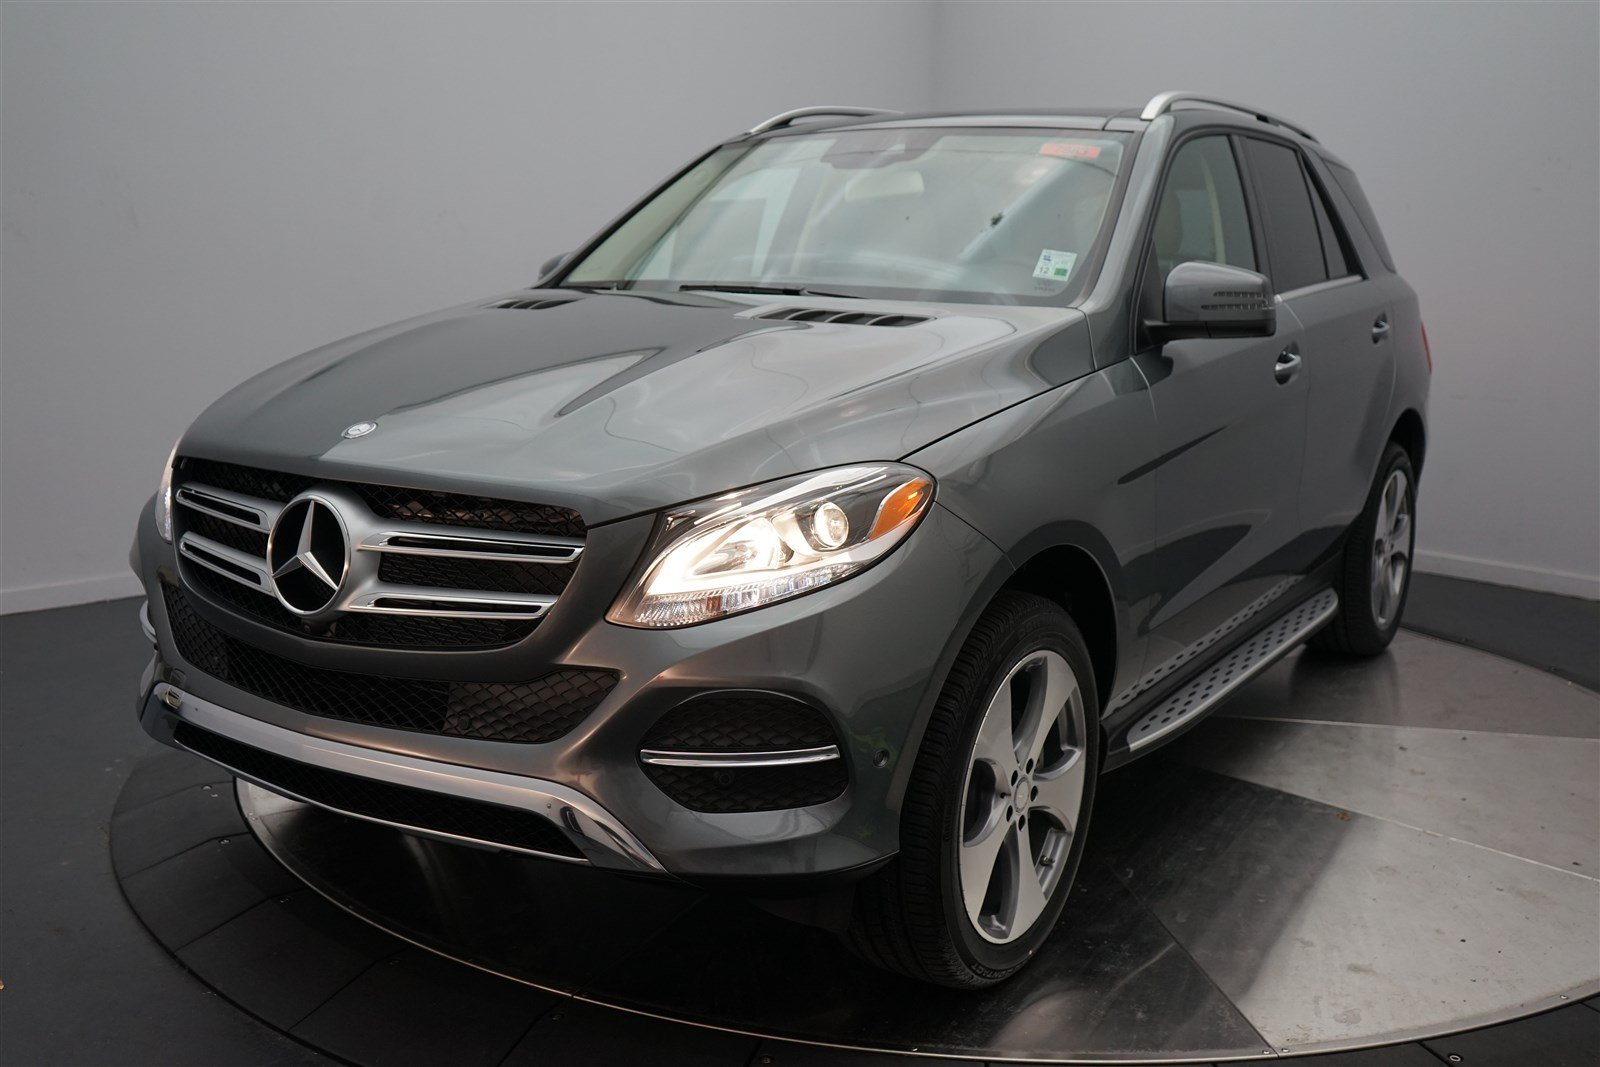 New 2017 mercedes benz gle gle 350 suv in shreveport 7883 for 2017 mercedes benz gle